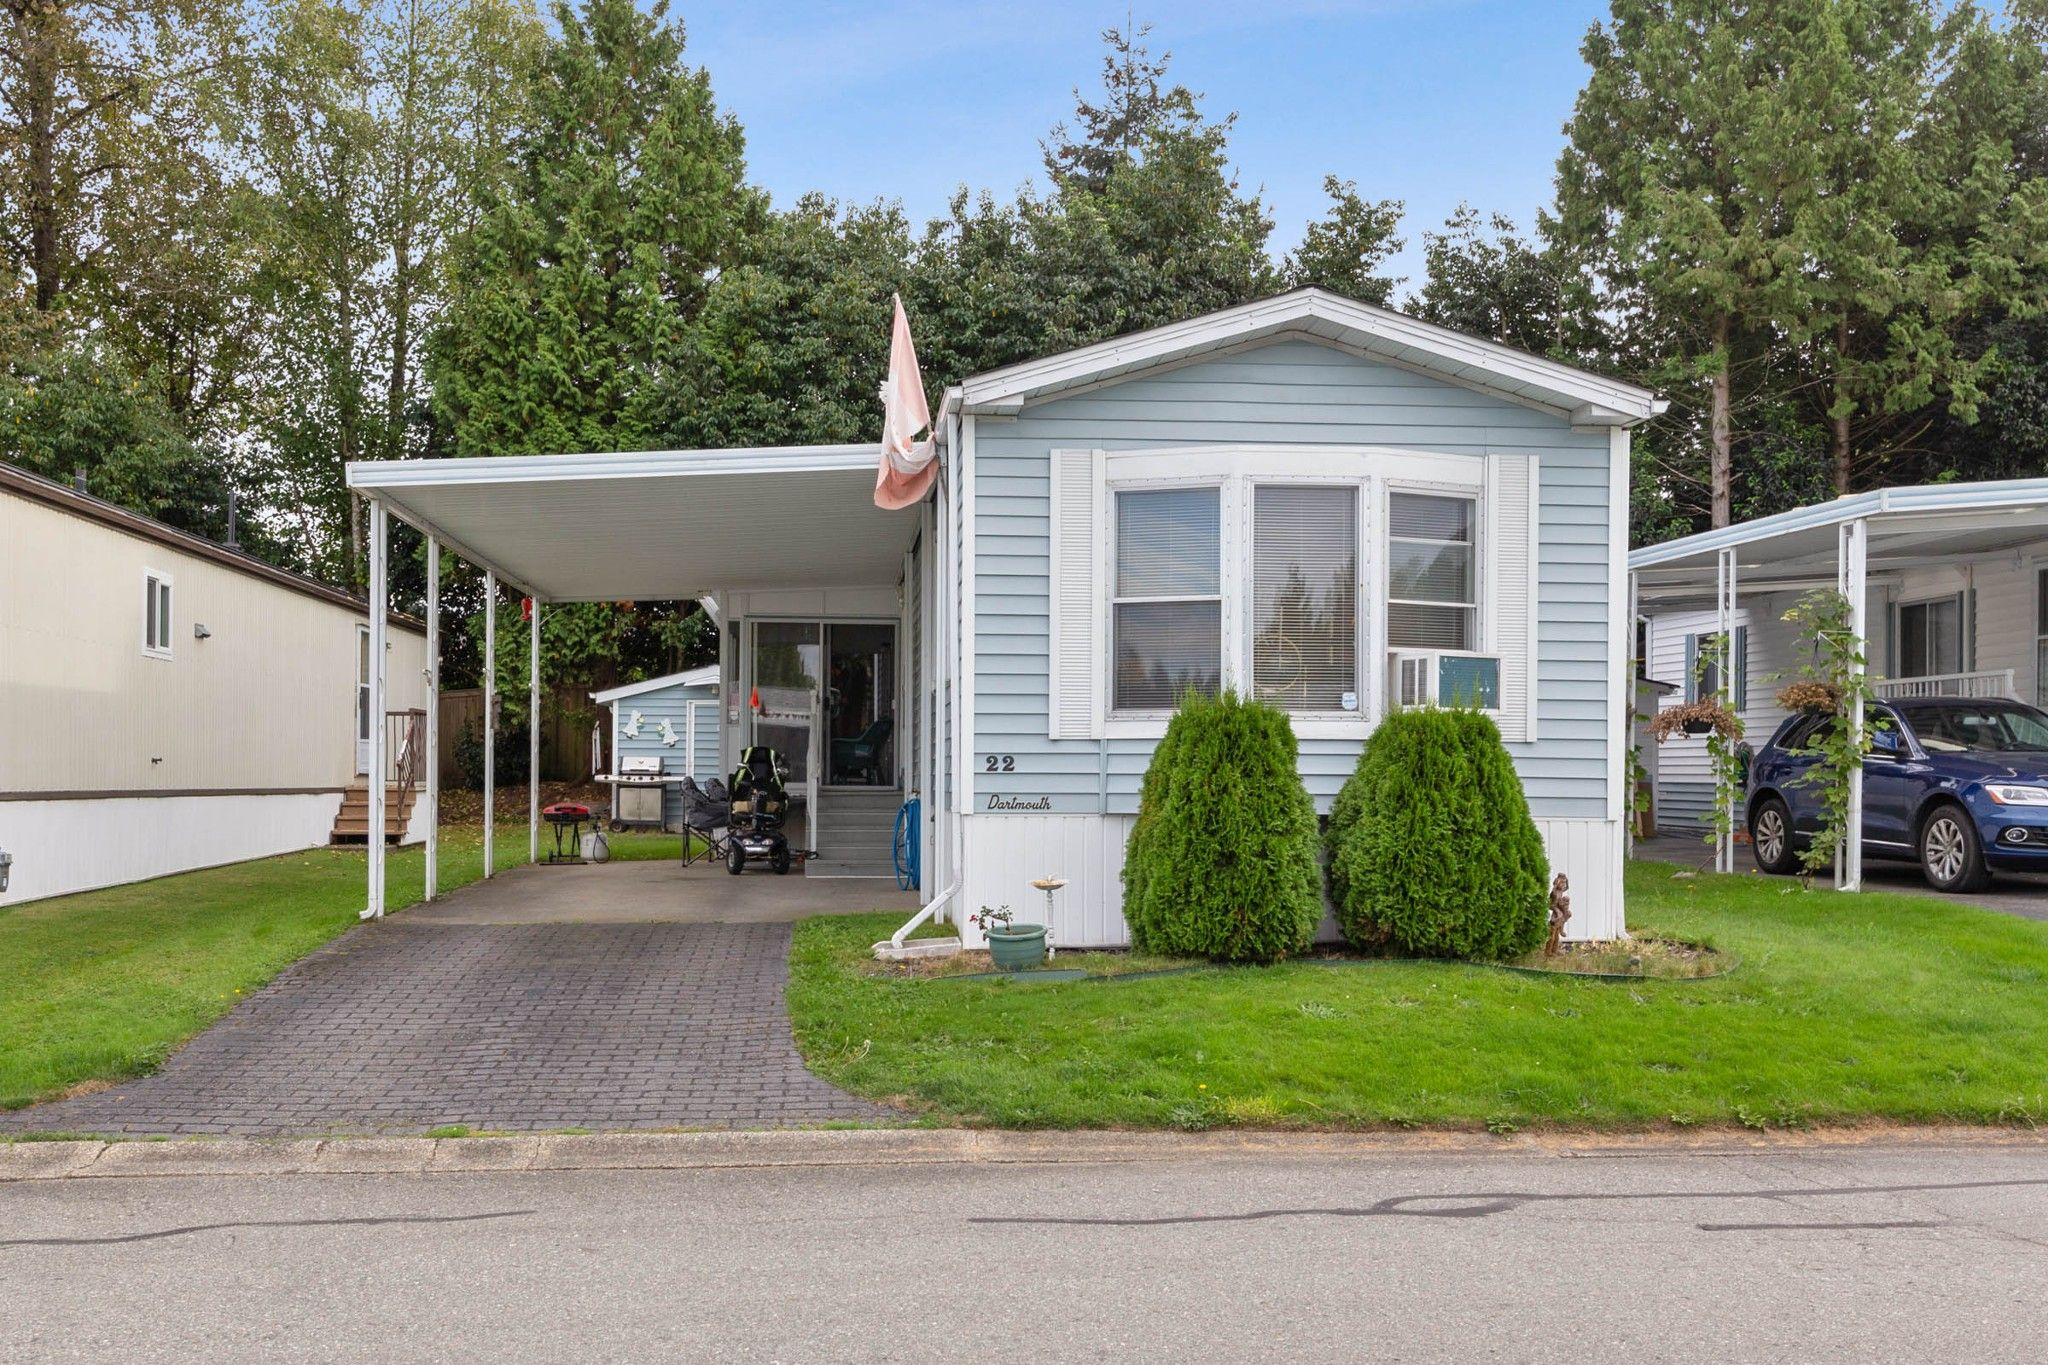 Main Photo: 22 13507 81 Avenue in Surrey: Queen Mary Park Surrey Manufactured Home for sale : MLS®# R2499572